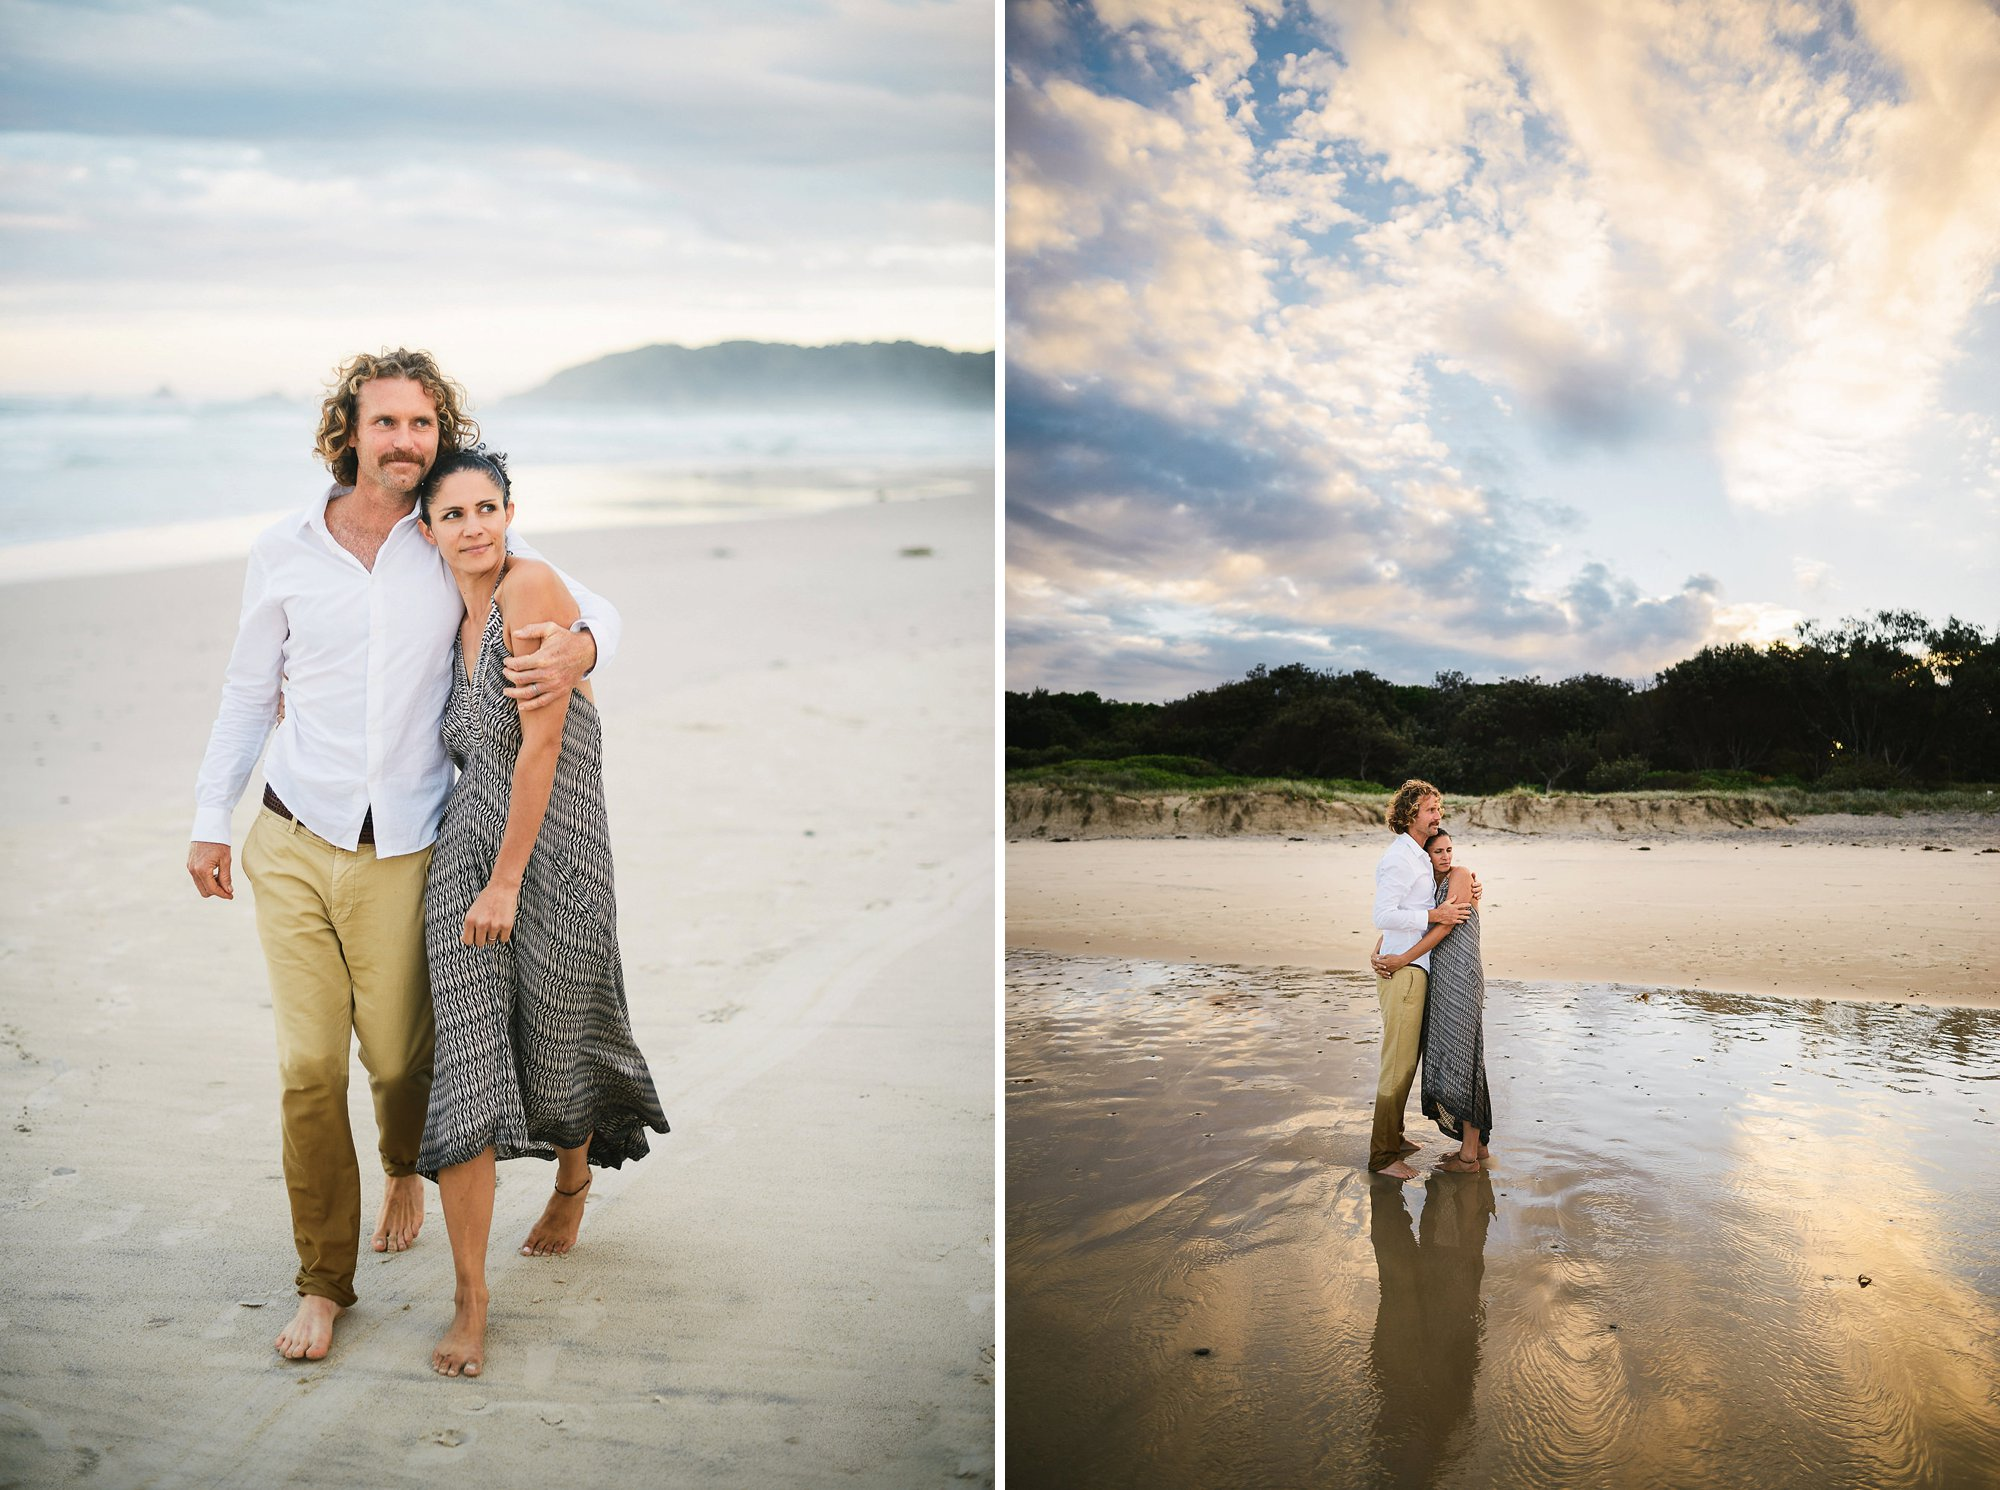 Fotograf Konstanz - Wedding Photographer ByronBay Australia EFP 016 - Destination Wedding in Byron Bay, Australien  - 112 -